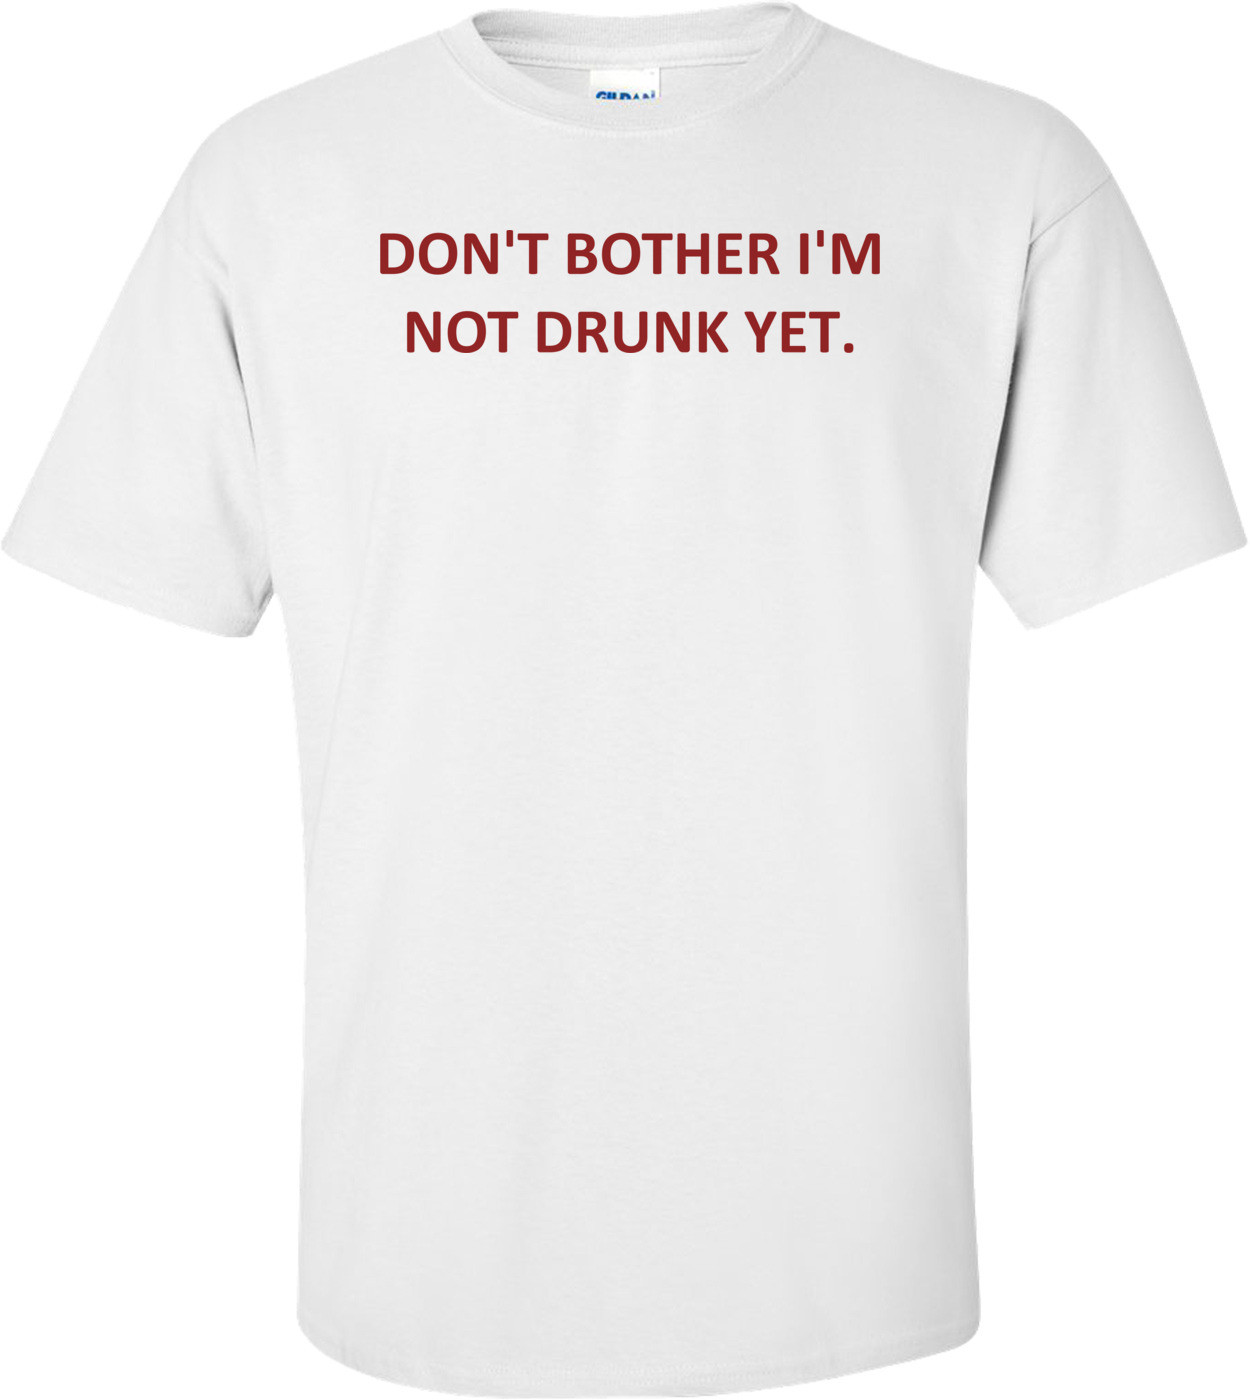 DON'T BOTHER I'M NOT DRUNK YET. Shirt